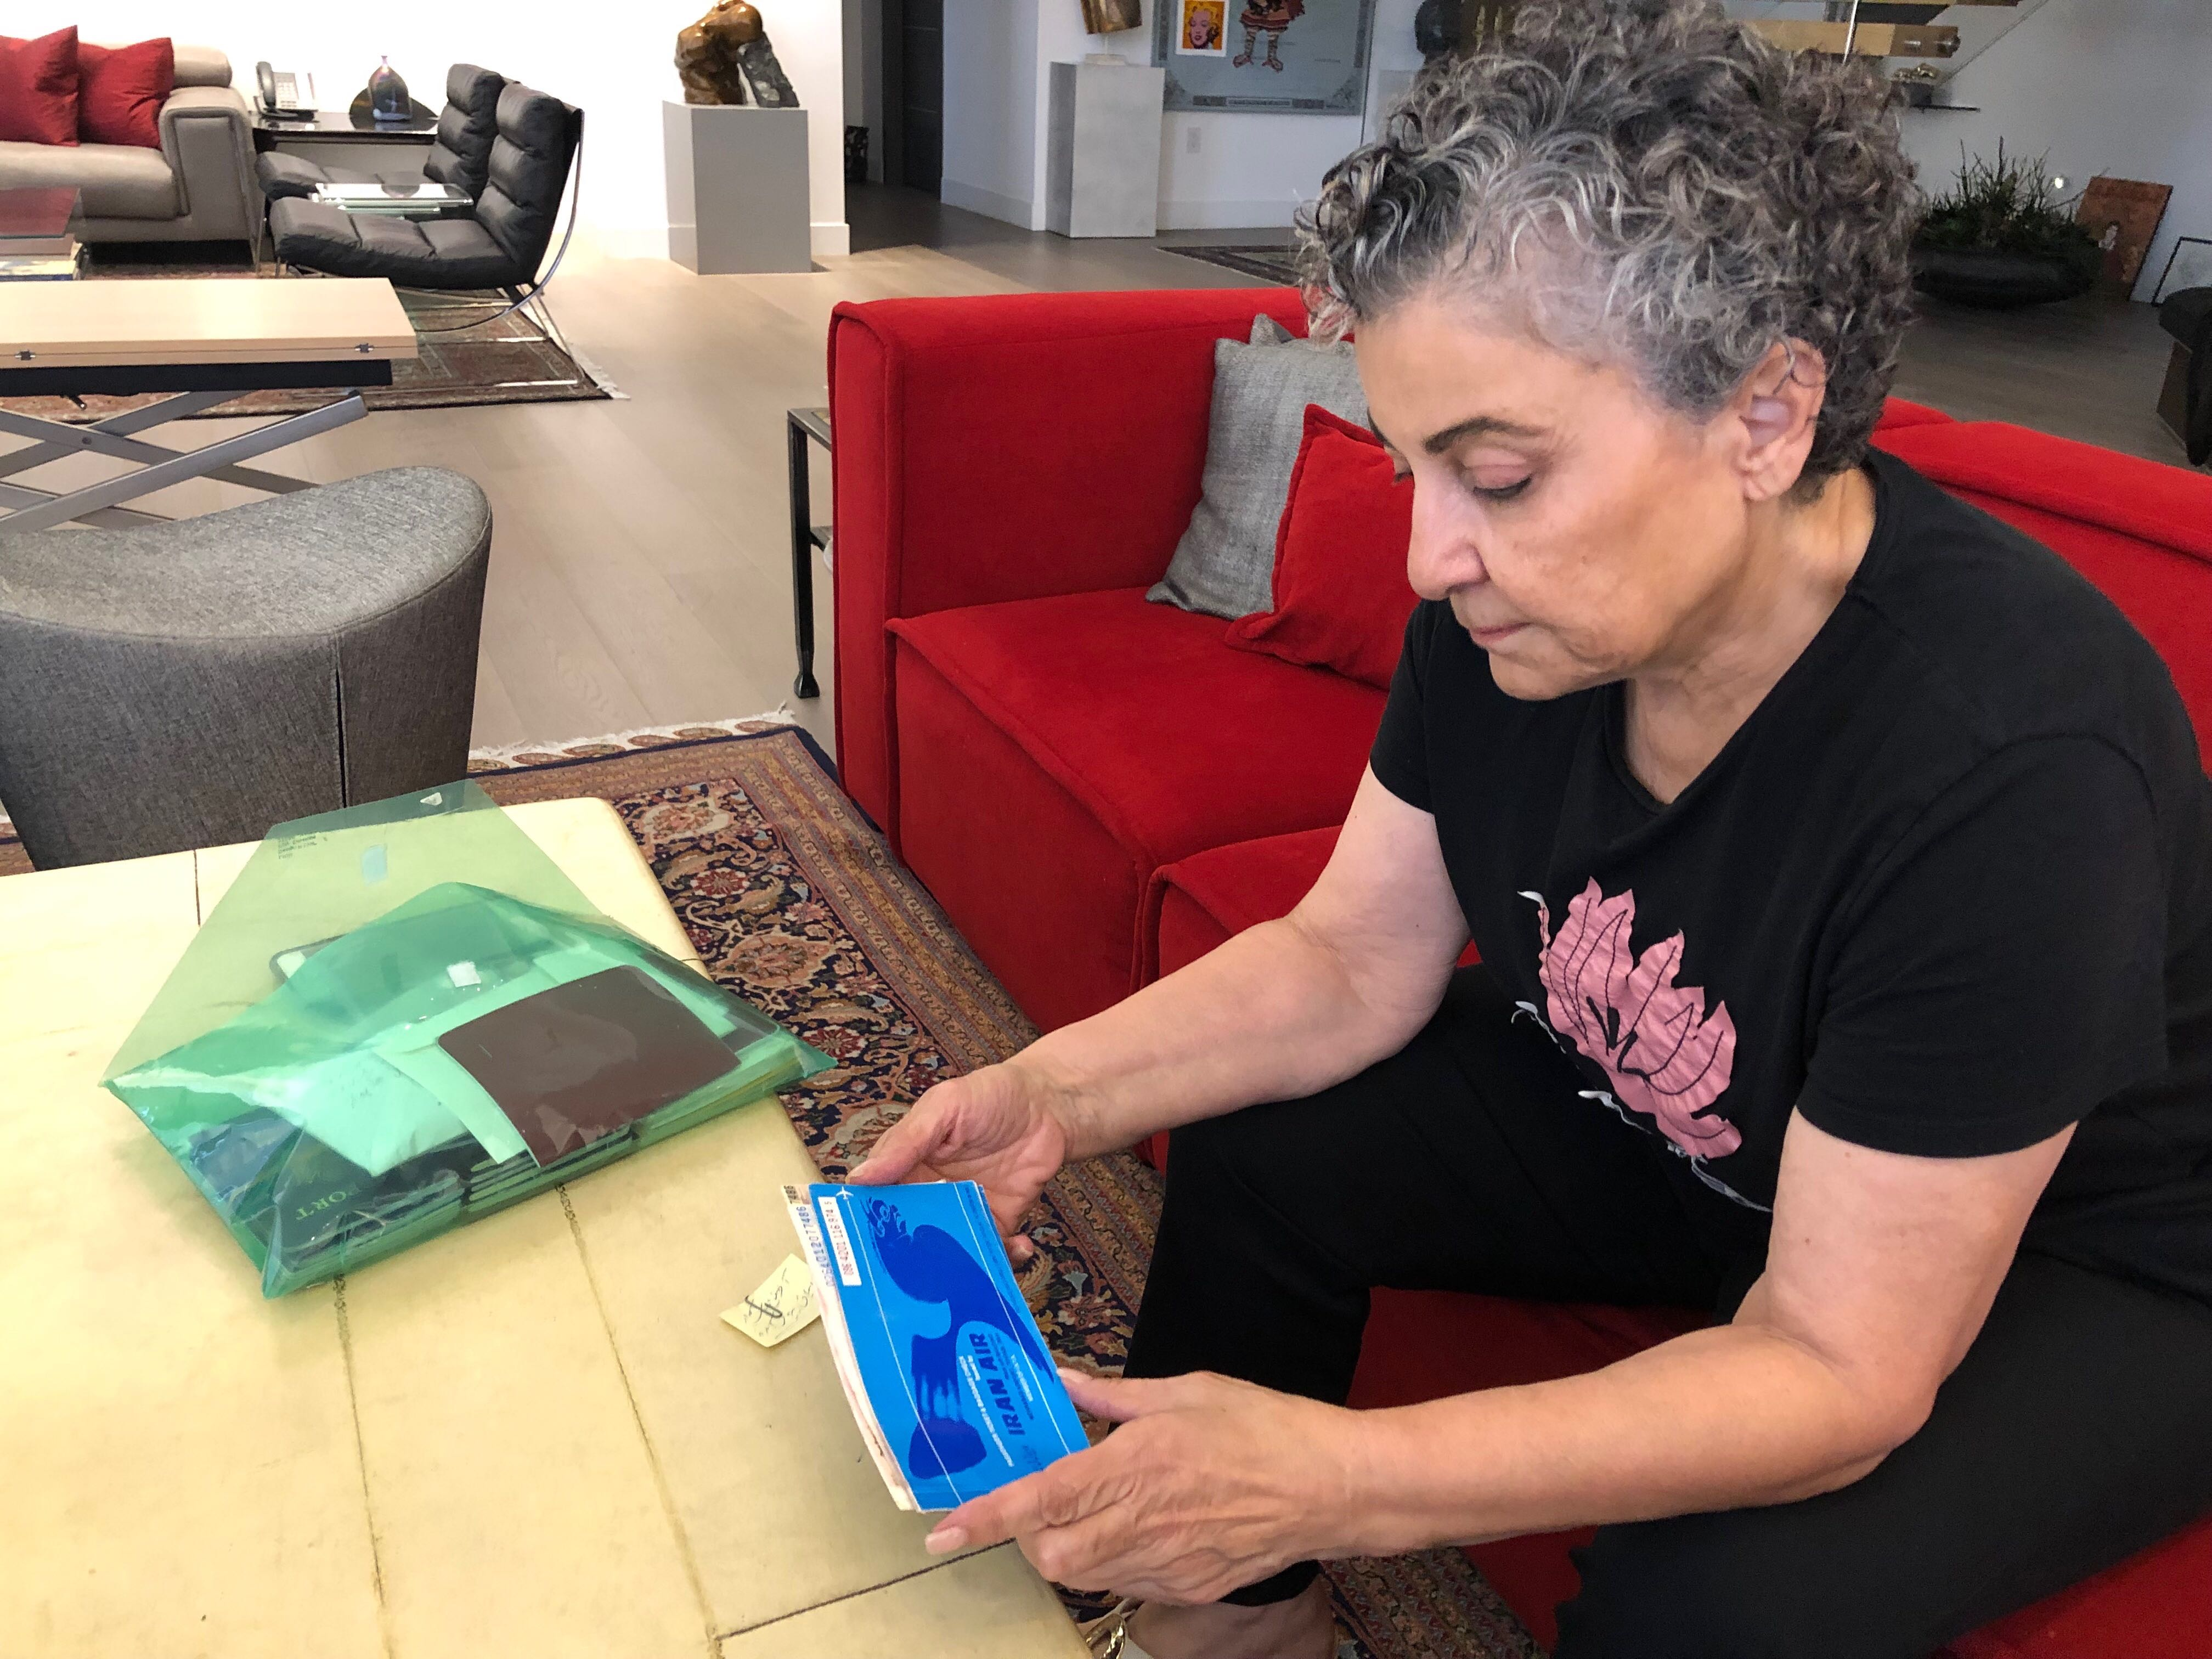 Iranian American radio host Homa Sarsharat her home in Los Angeles. She holds the plane ticket that brought her to the US more than 40 years ago.